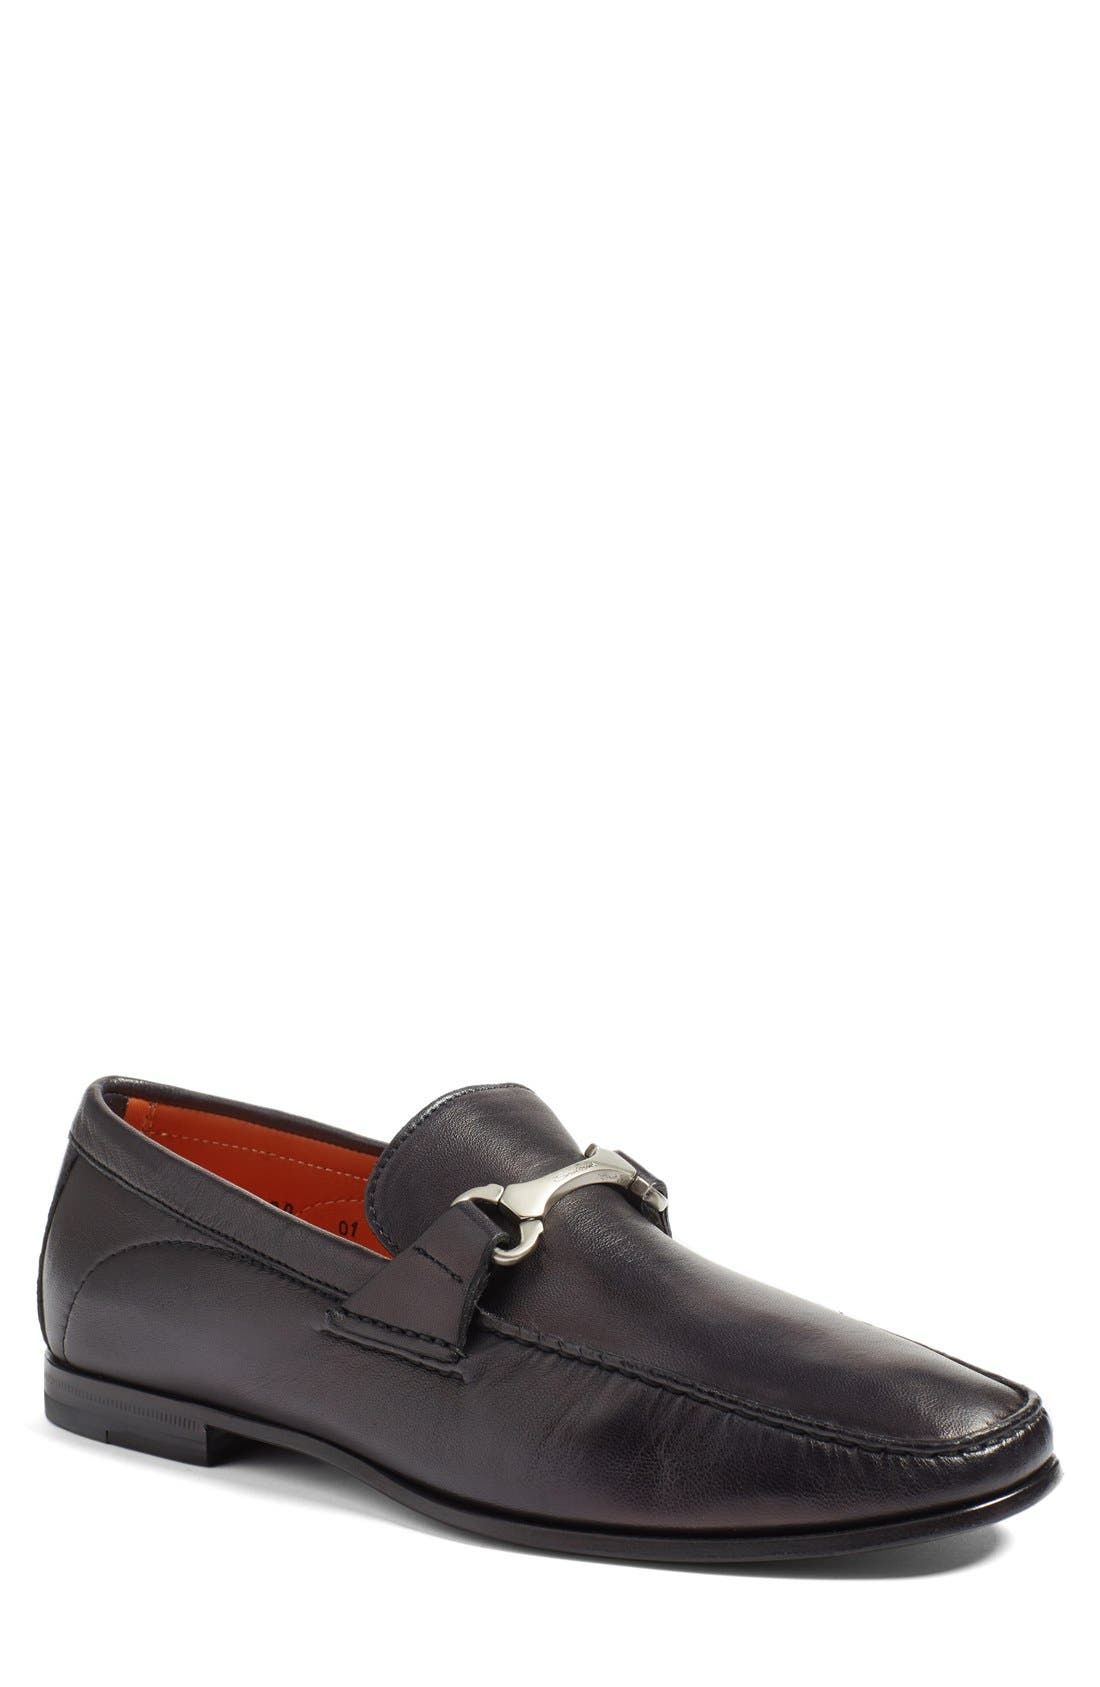 'Wake' Bit Loafer,                         Main,                         color, 001